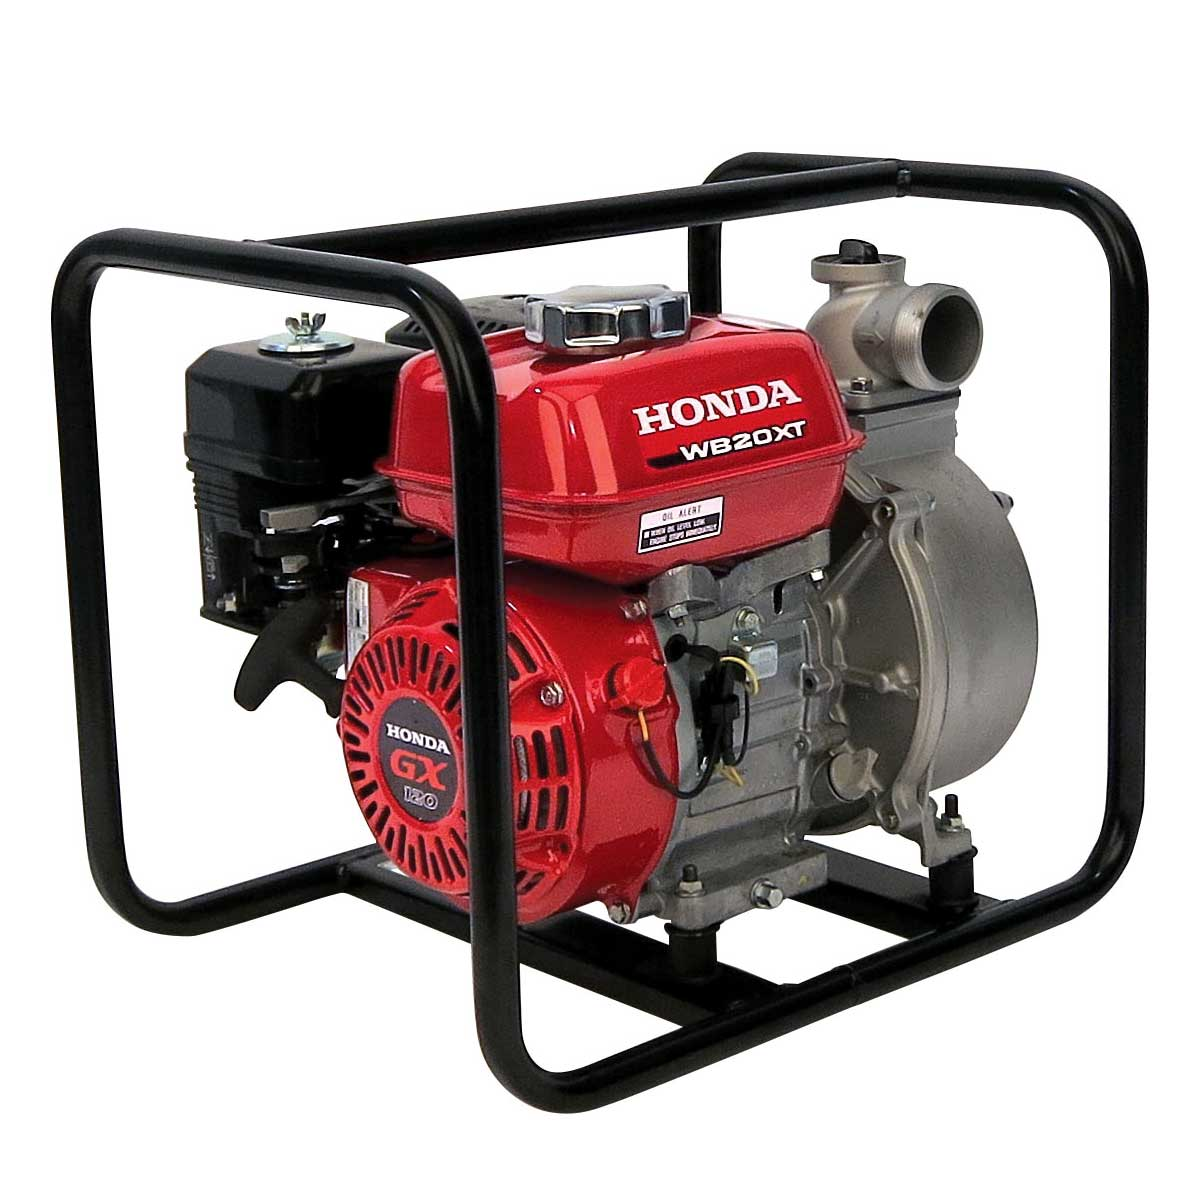 Honda WB20XK2 Water Pump